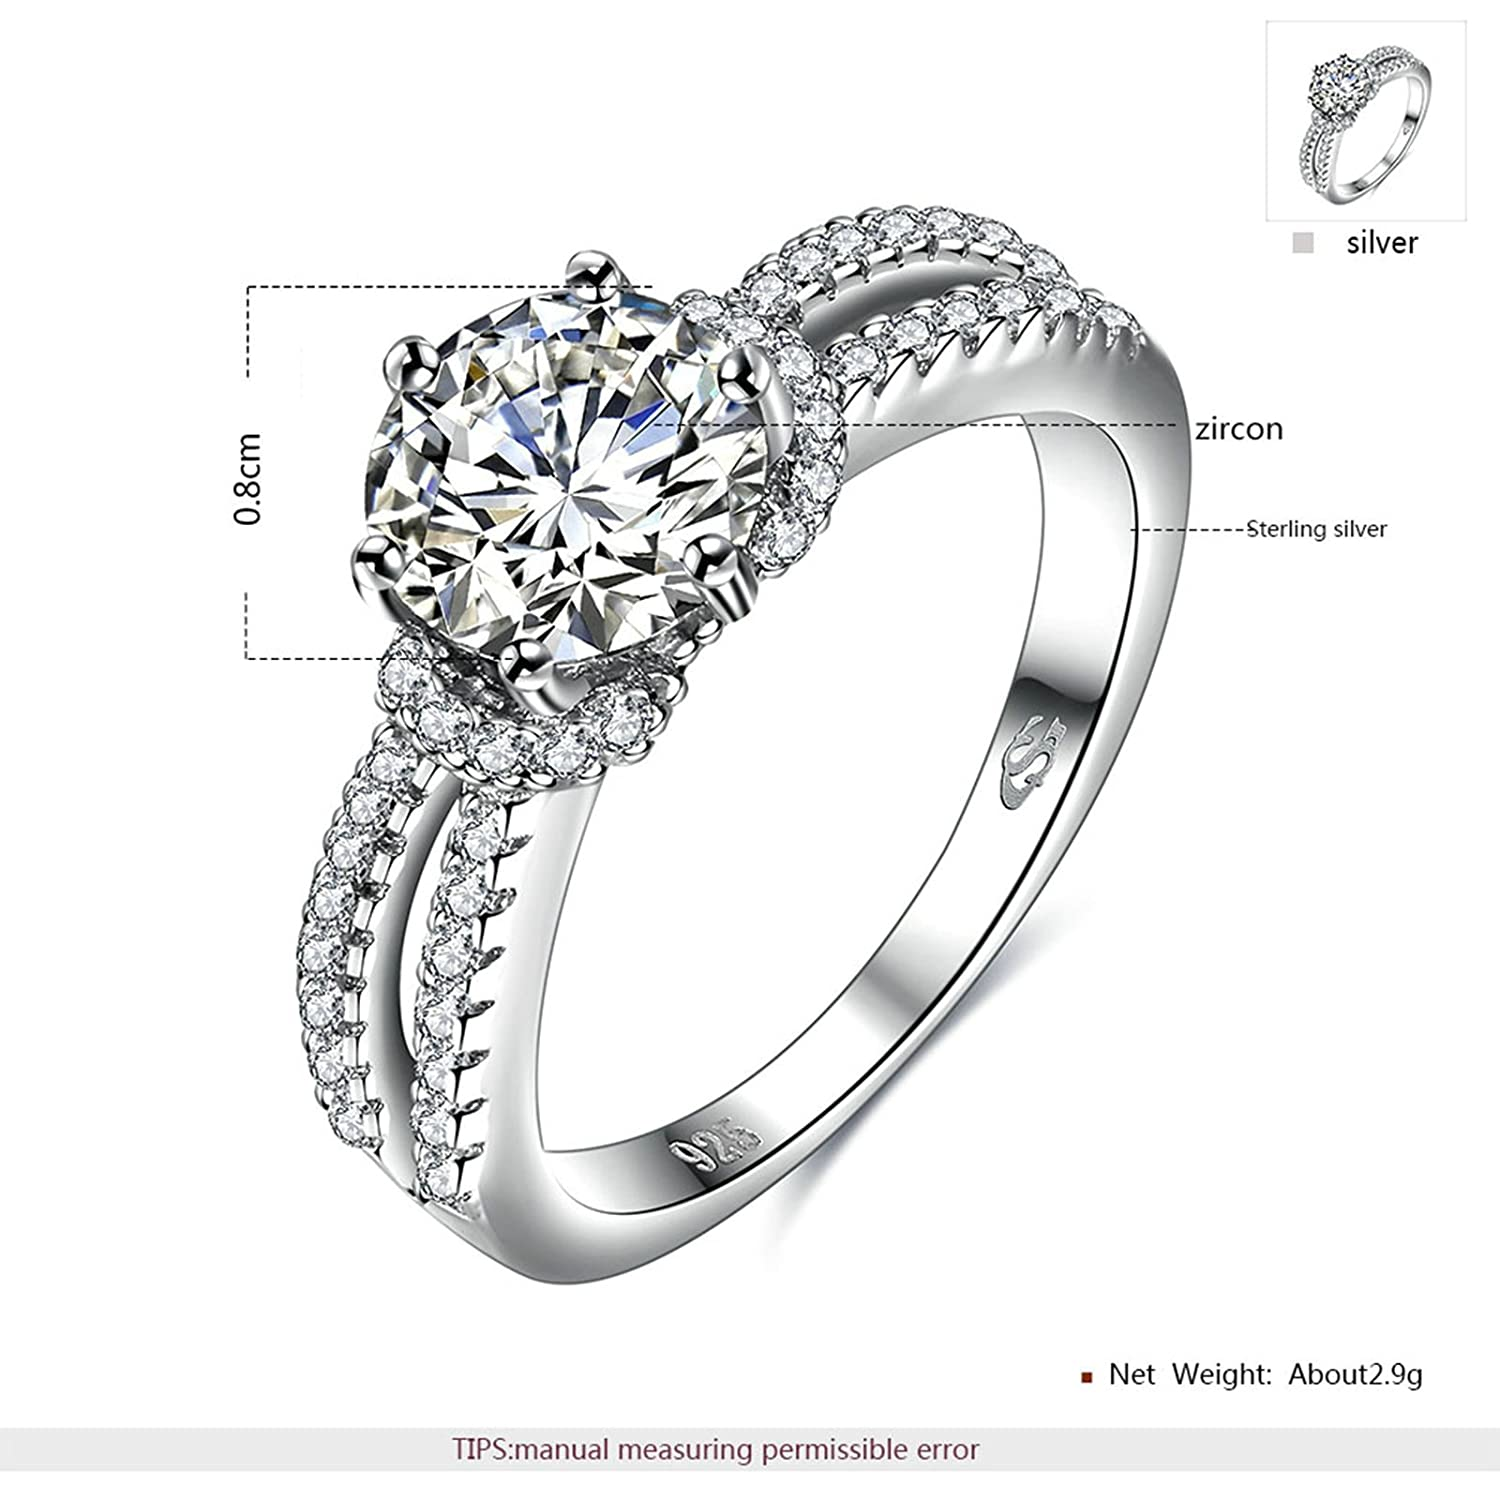 KnSam Ring for Women Fashion Sterling Silver Ring for Women Double Row Hollow Silver Size 6